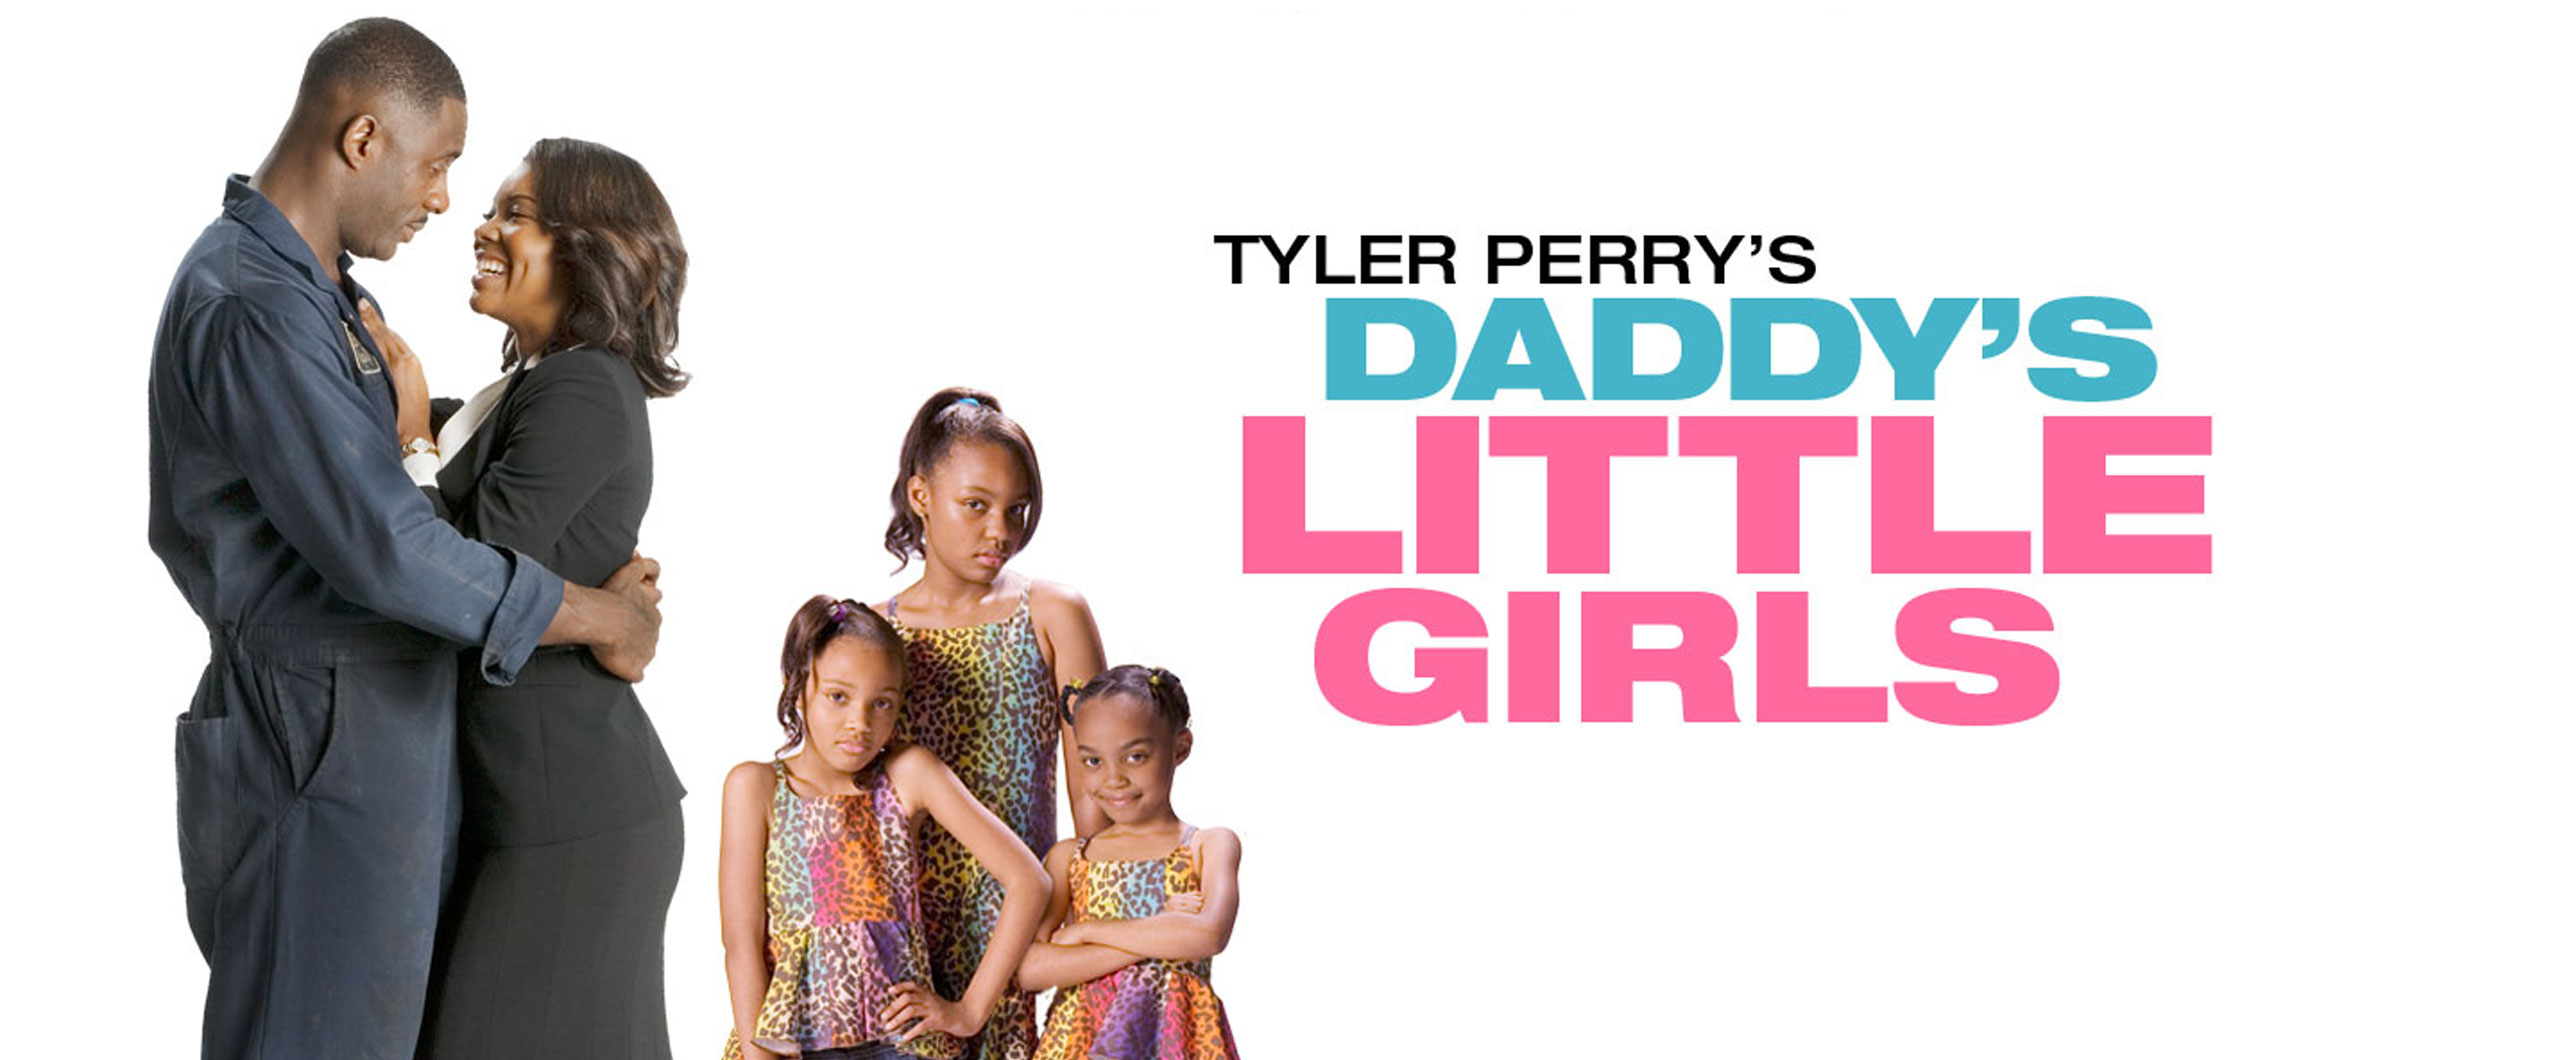 Daddy's Little Girls - April 21